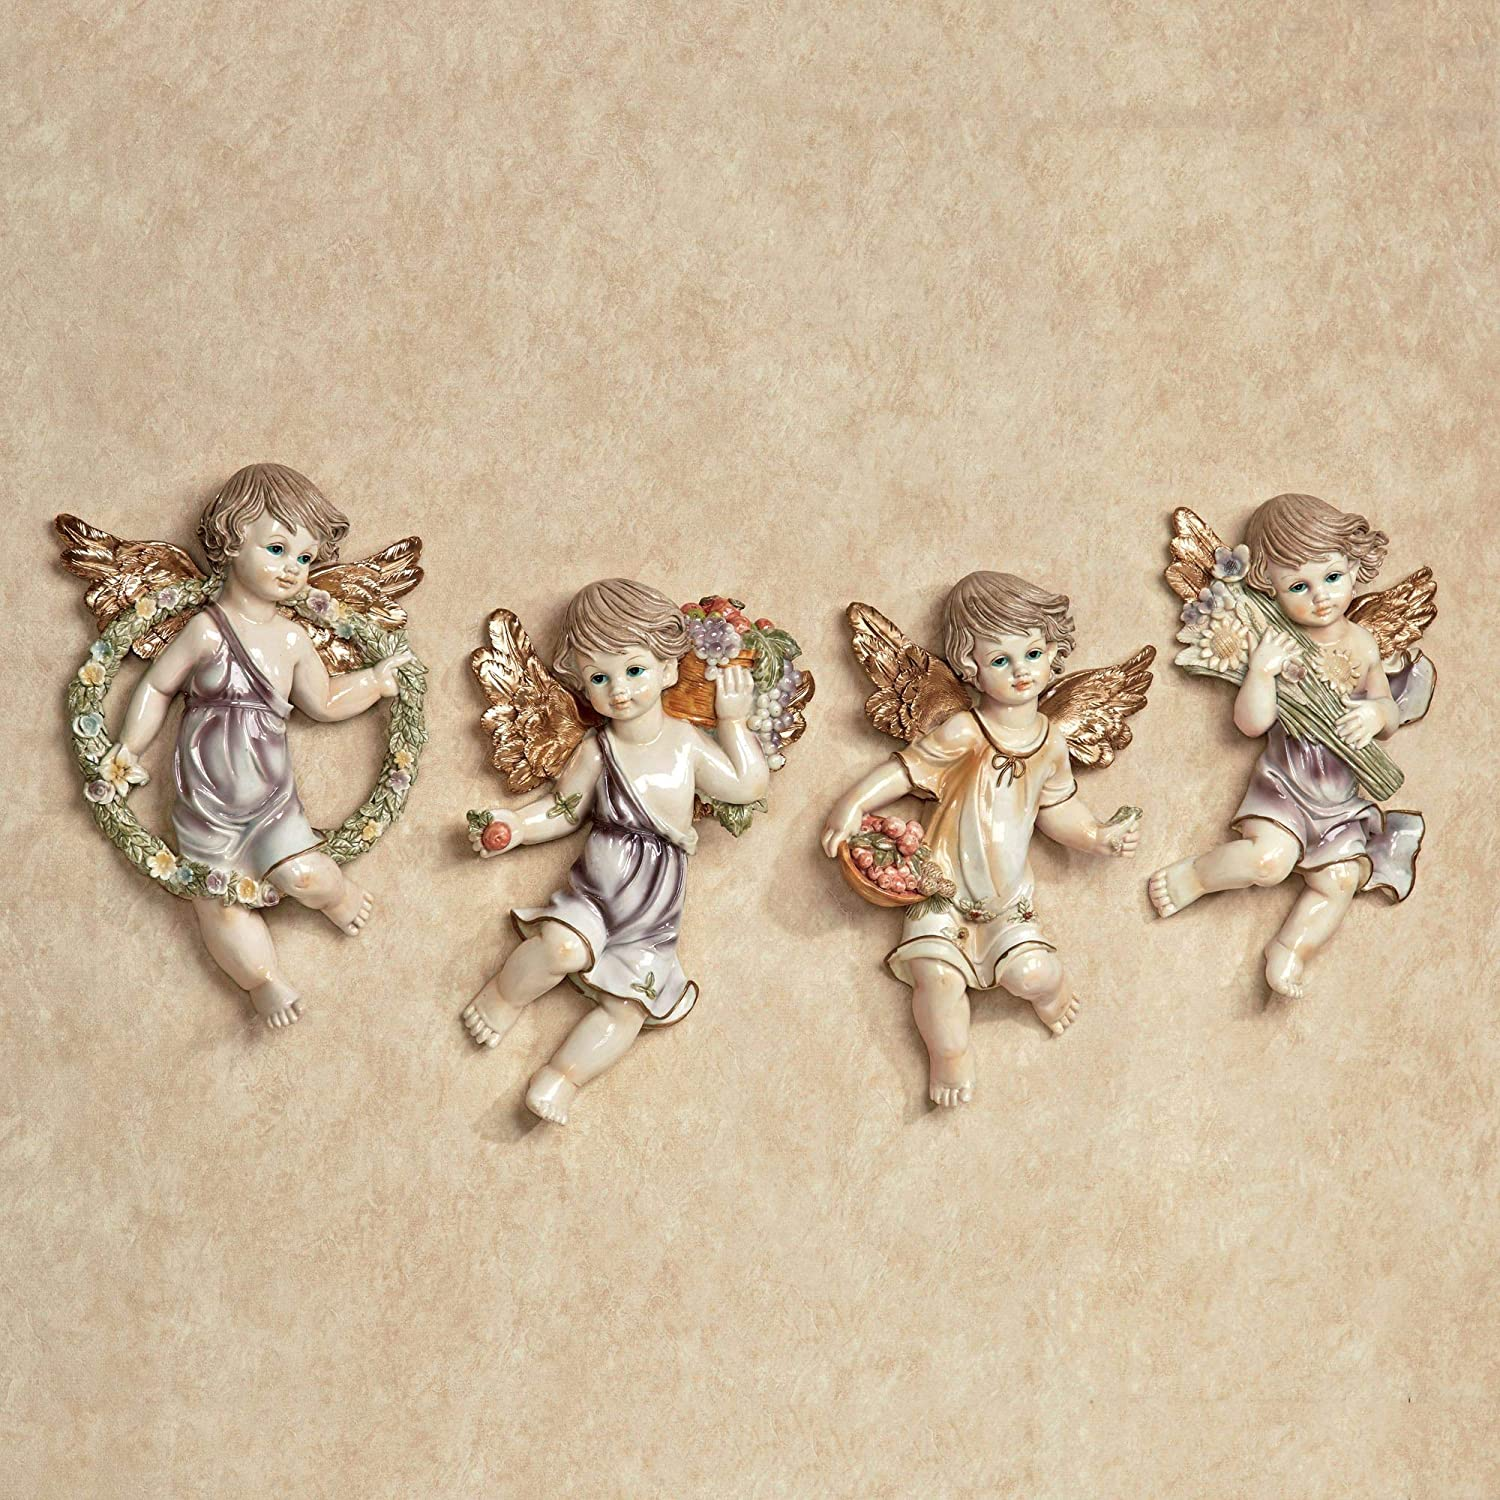 Cherubs and Blooms Wall Plaque Set Pastel Set of Four Pastel Pink, Purple, Cream, Green and Gold 6.5